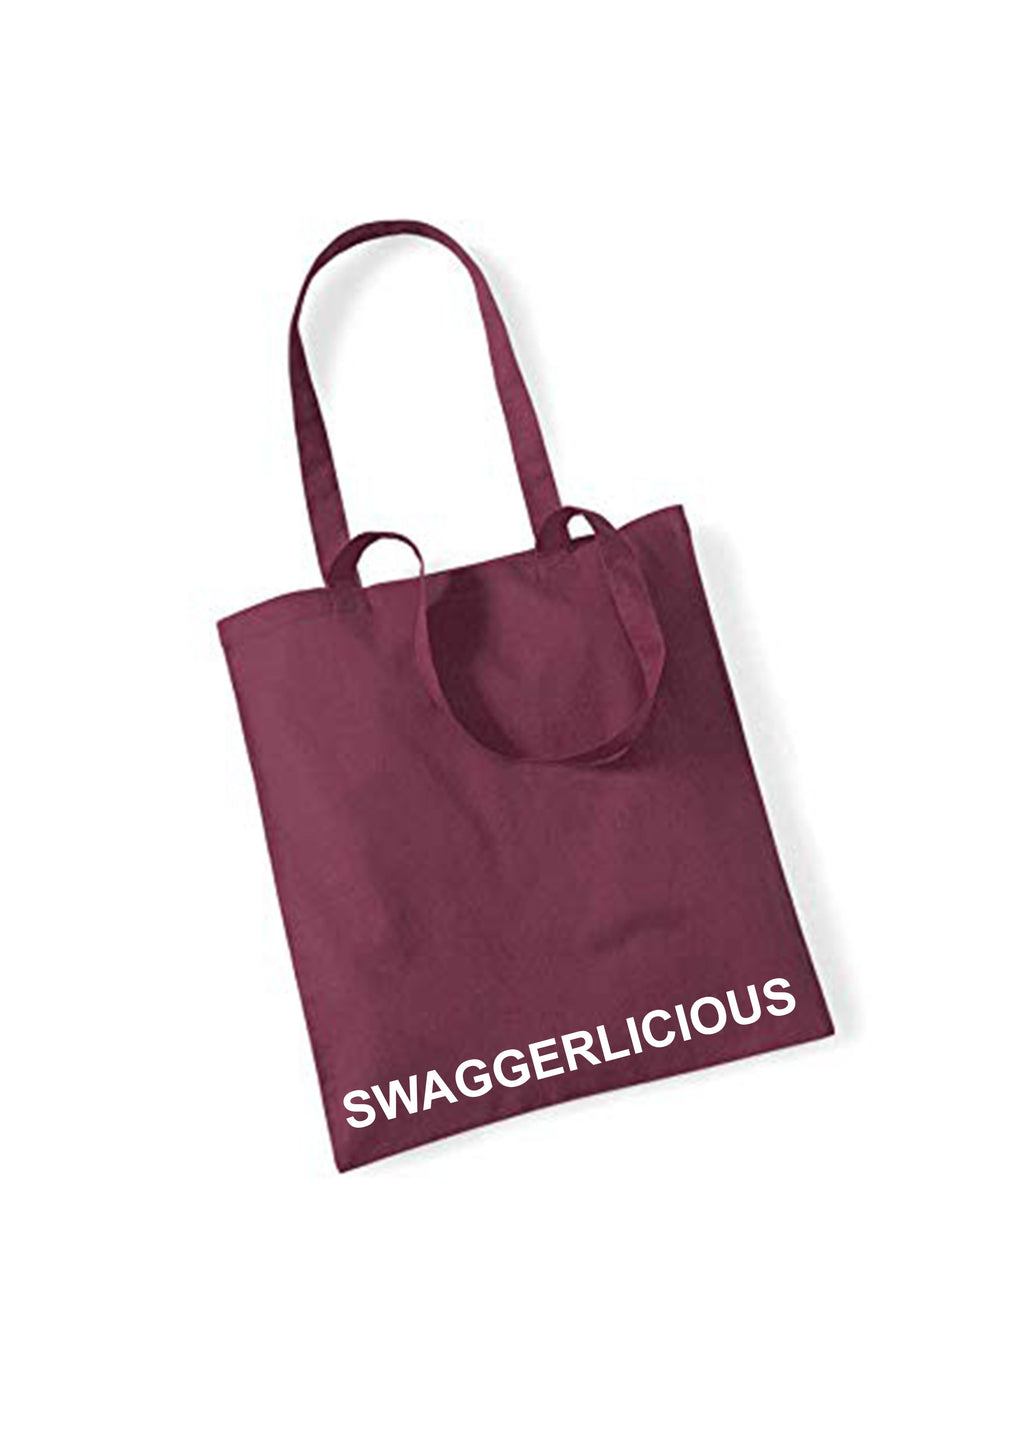 Swaggerlicious Burgundy Tote Bag - swaggerlicious-clothing.com